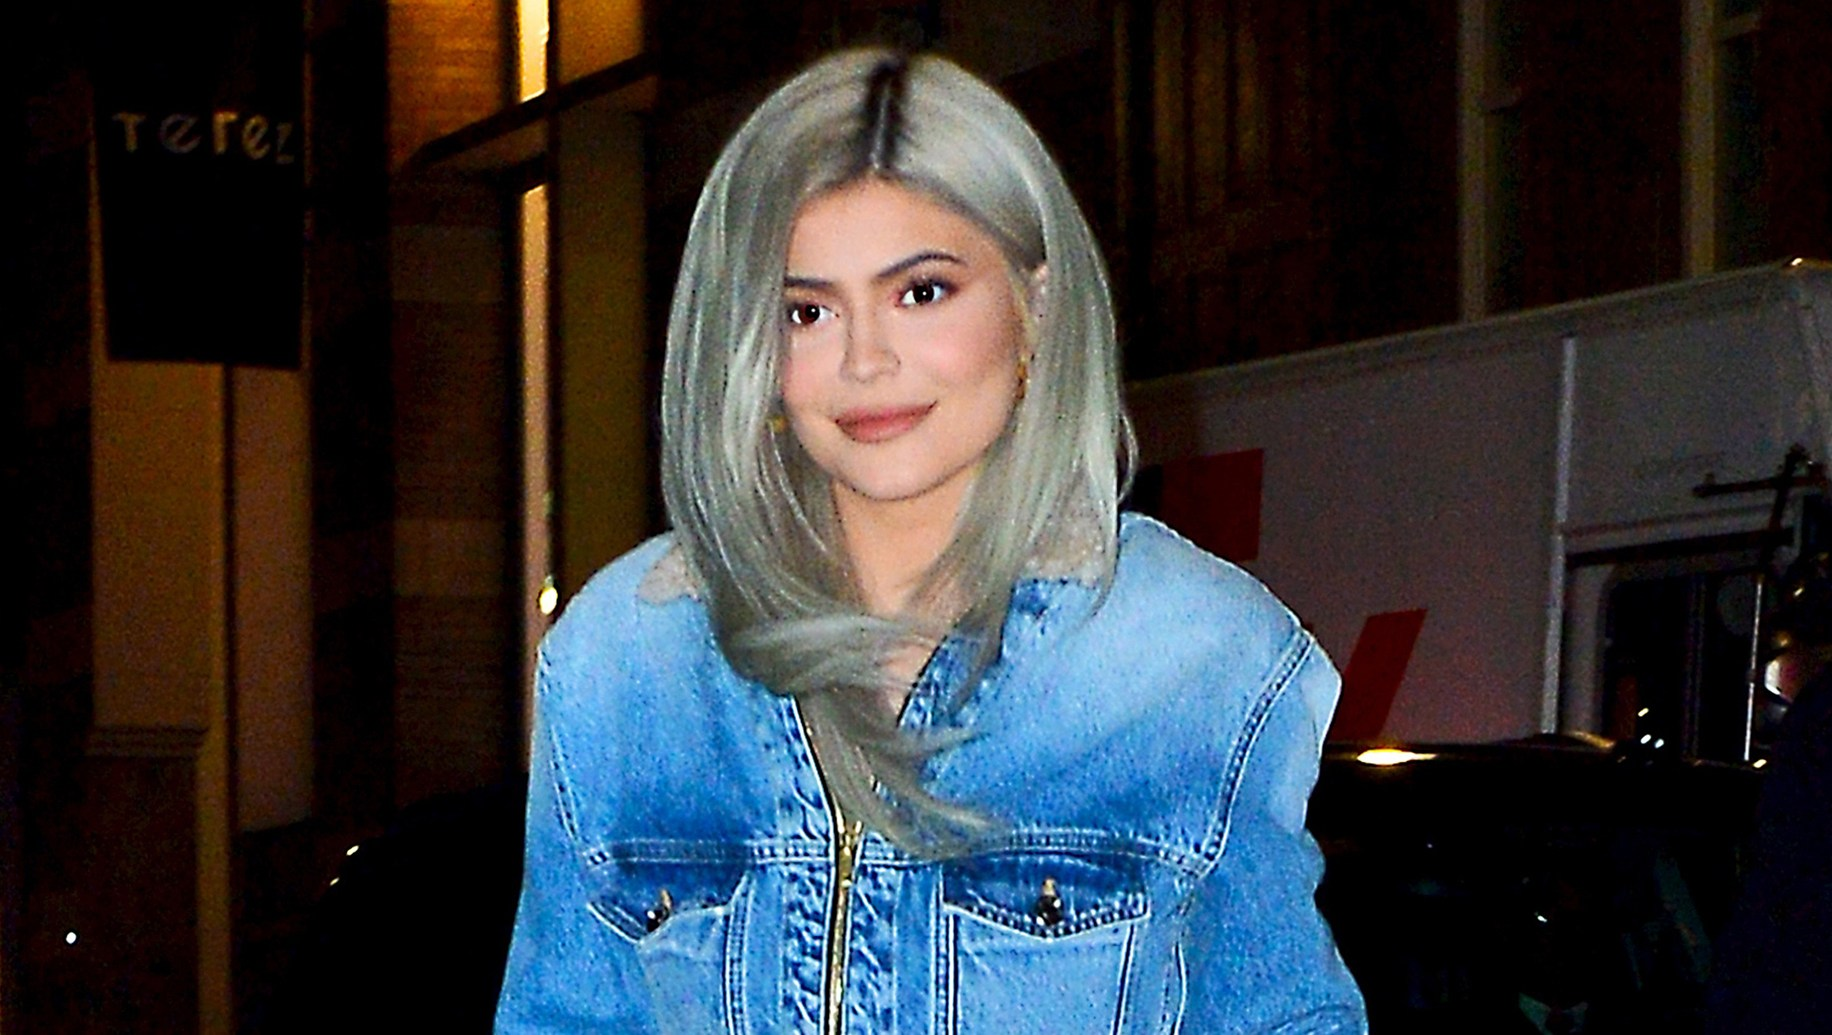 Kylie Jenner Denies Being Pregnant After She Teases 'Something Really Exciting' Coming Soon